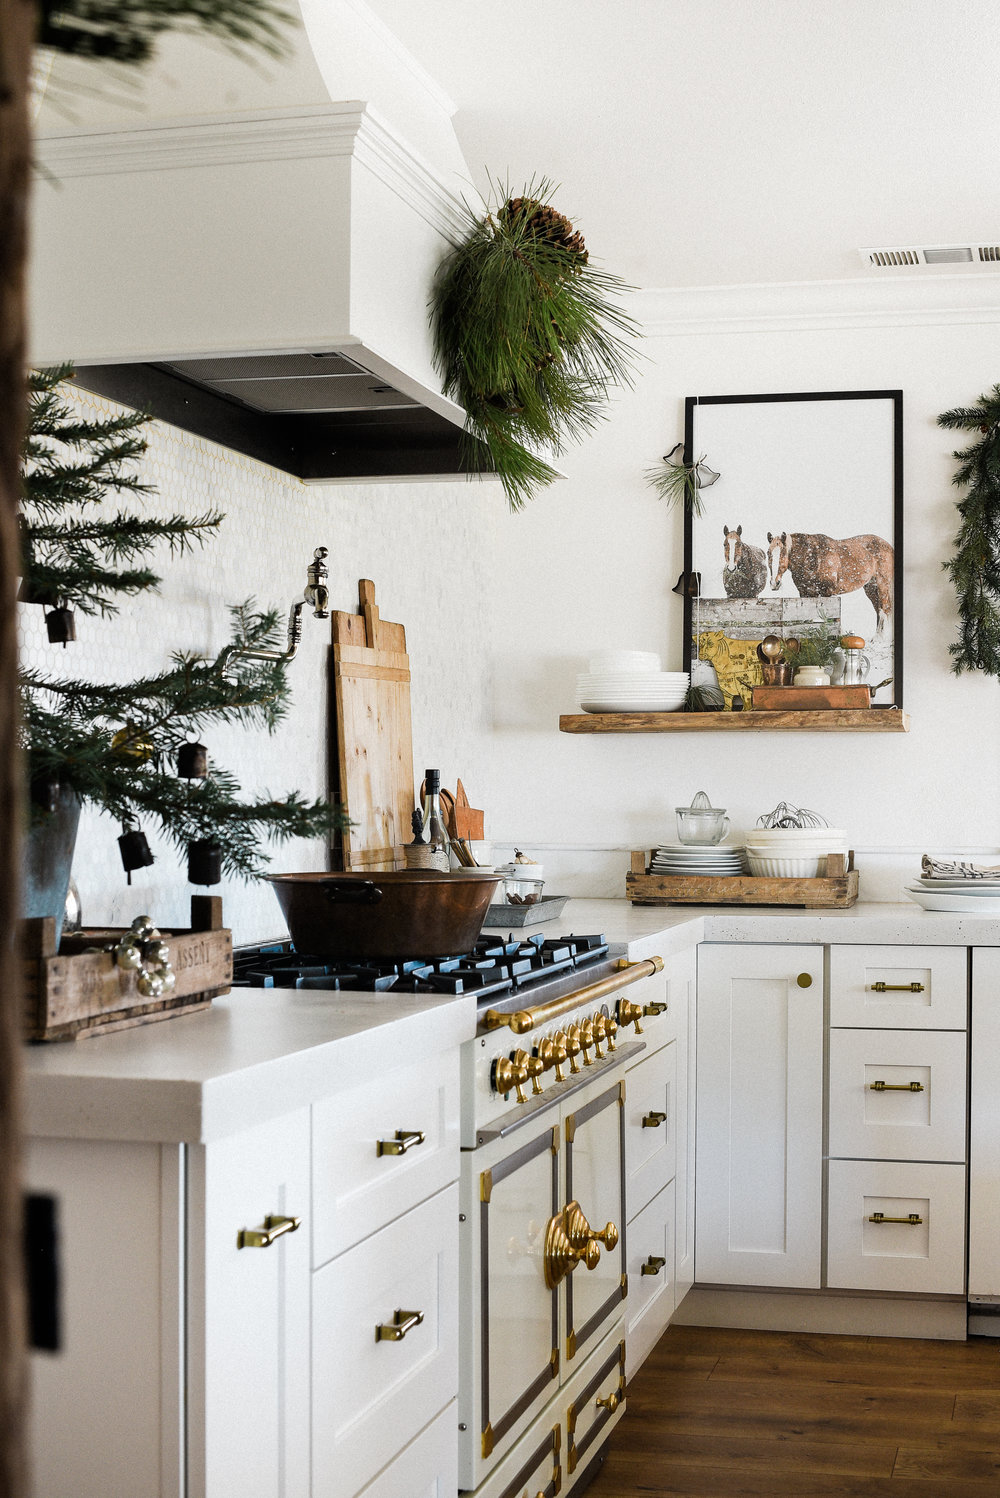 Kitchen decorating ideas Cabinets Minimalistic Christmas Kitchen Decor Ideas From Boxwoodavenuecom christmasdecor christmaskitchen Boxwood Avenue Farmhouse Christmas Decorating Ideas Our Christmas Kitchen